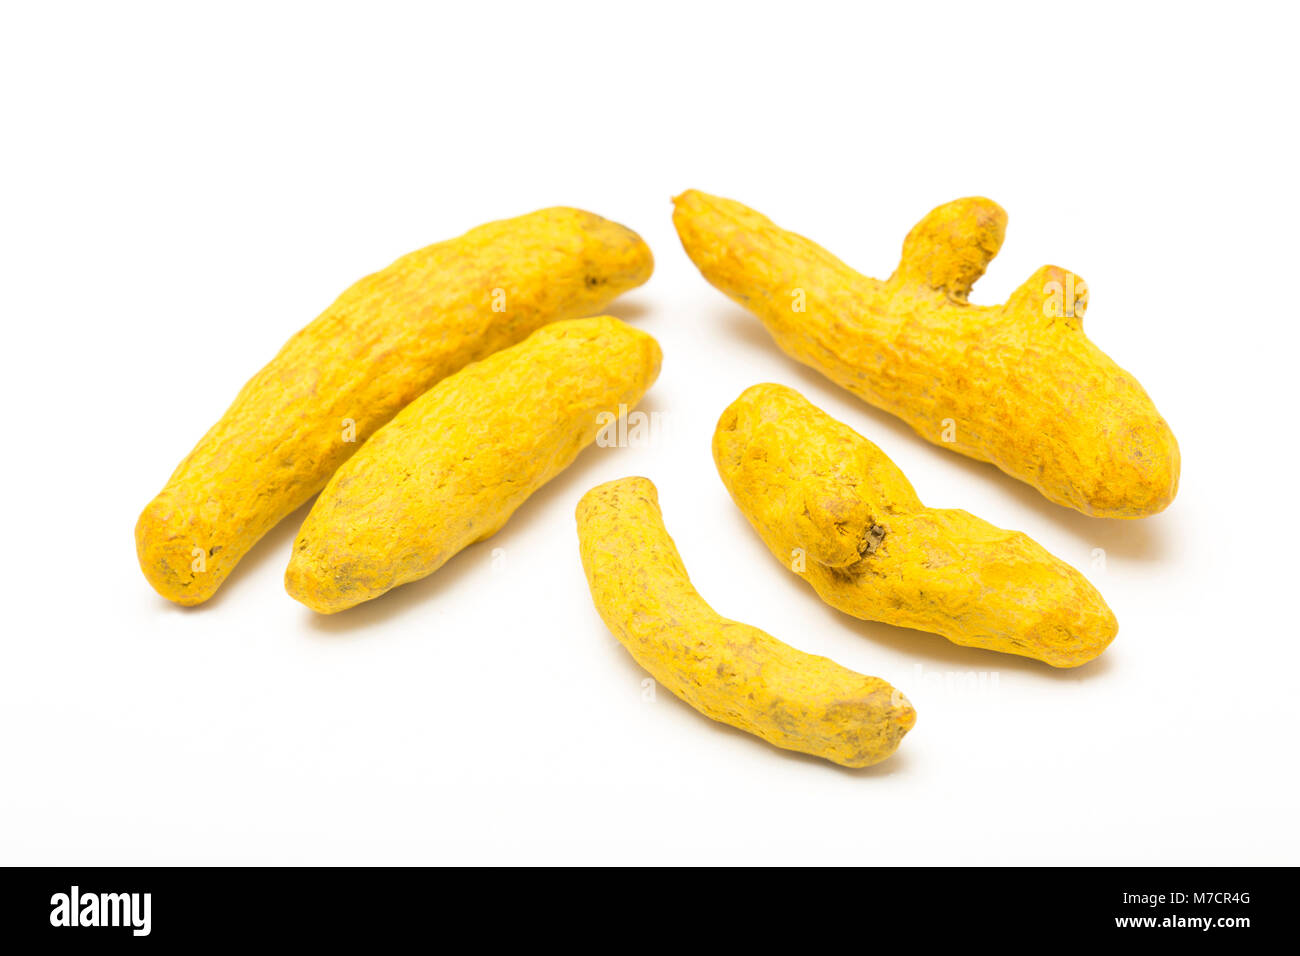 Dried turmeric root-Curcuma longa, bought from a shop in the UK and photographed in a studio. England UK GB - Stock Image